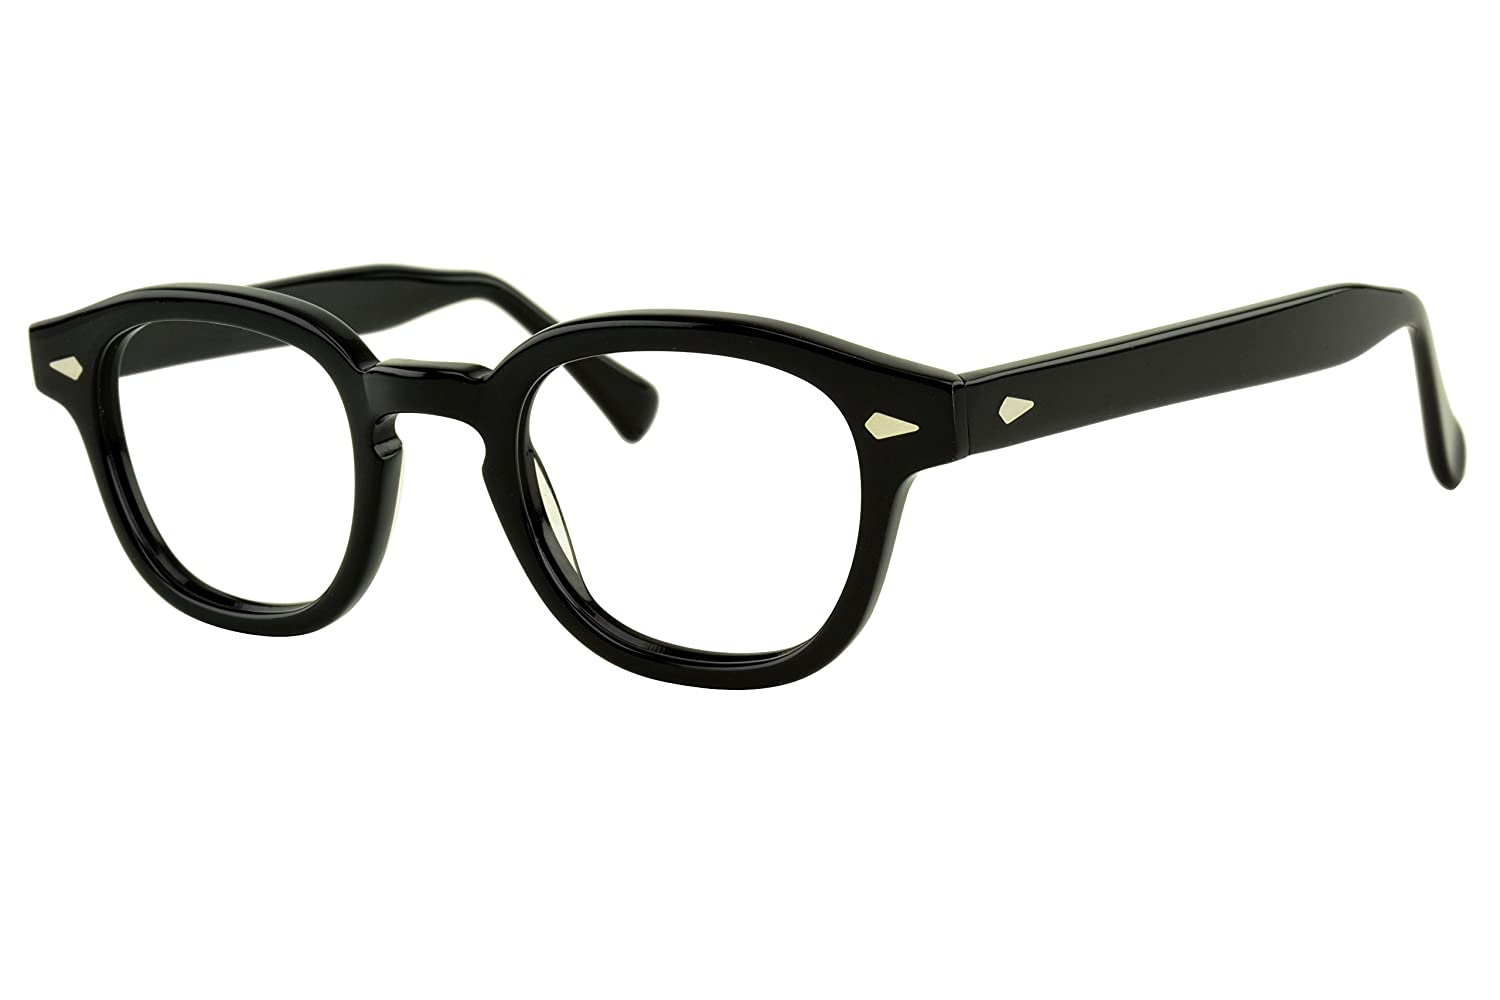 Verona Love Hand-Made Acetate Non Prescription Eyeglasses Frame Premium EyeWear Clear Lens Vintage Style Glasses Frames (VLV44 C001) MDO